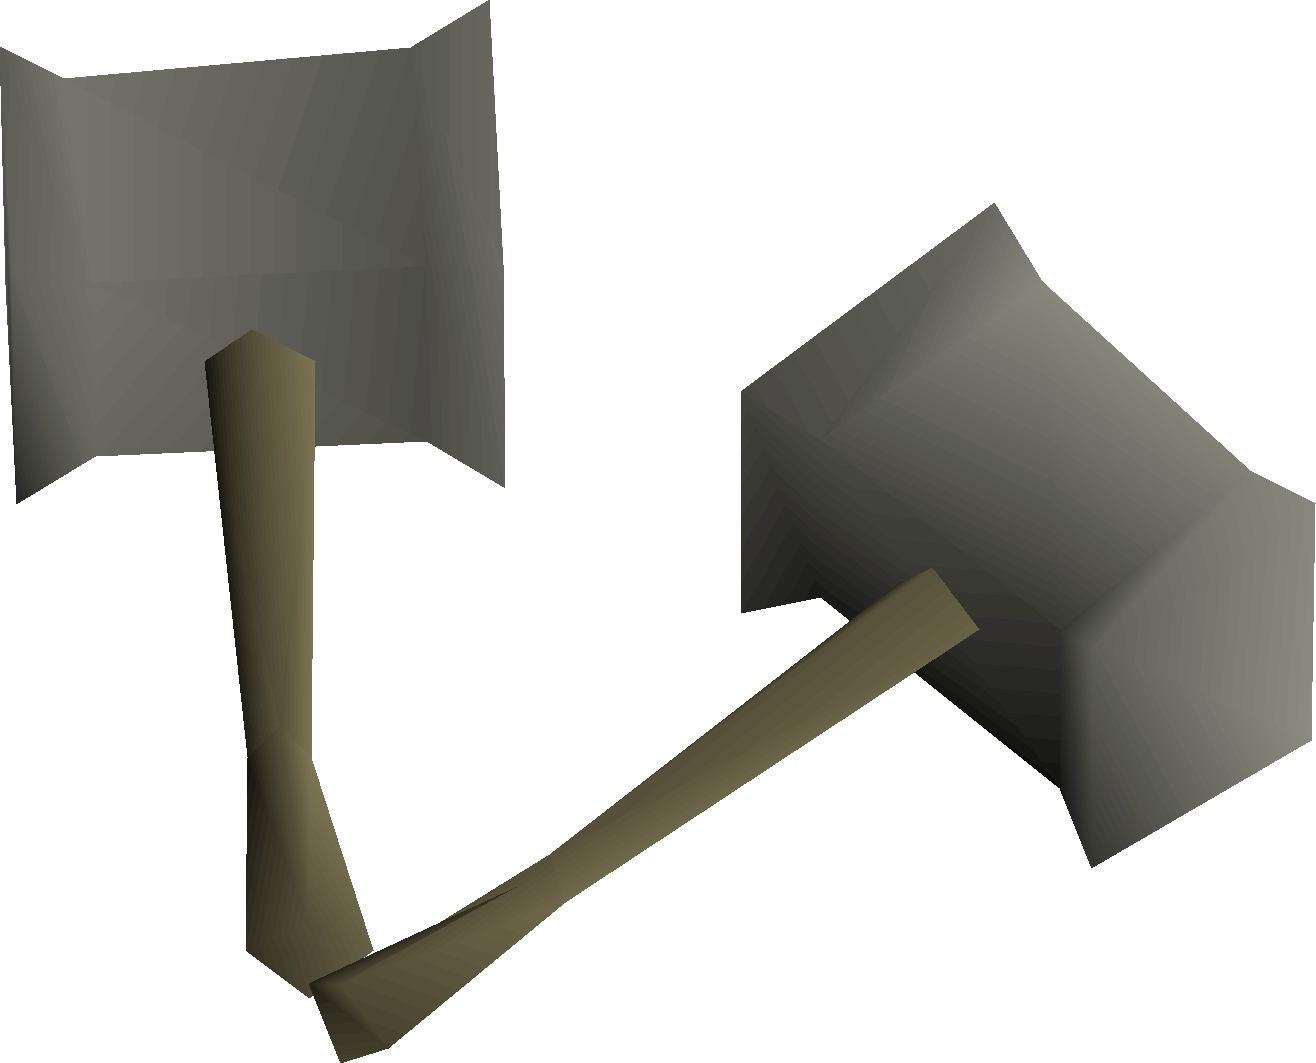 Torags Hammers Osrs Wiki